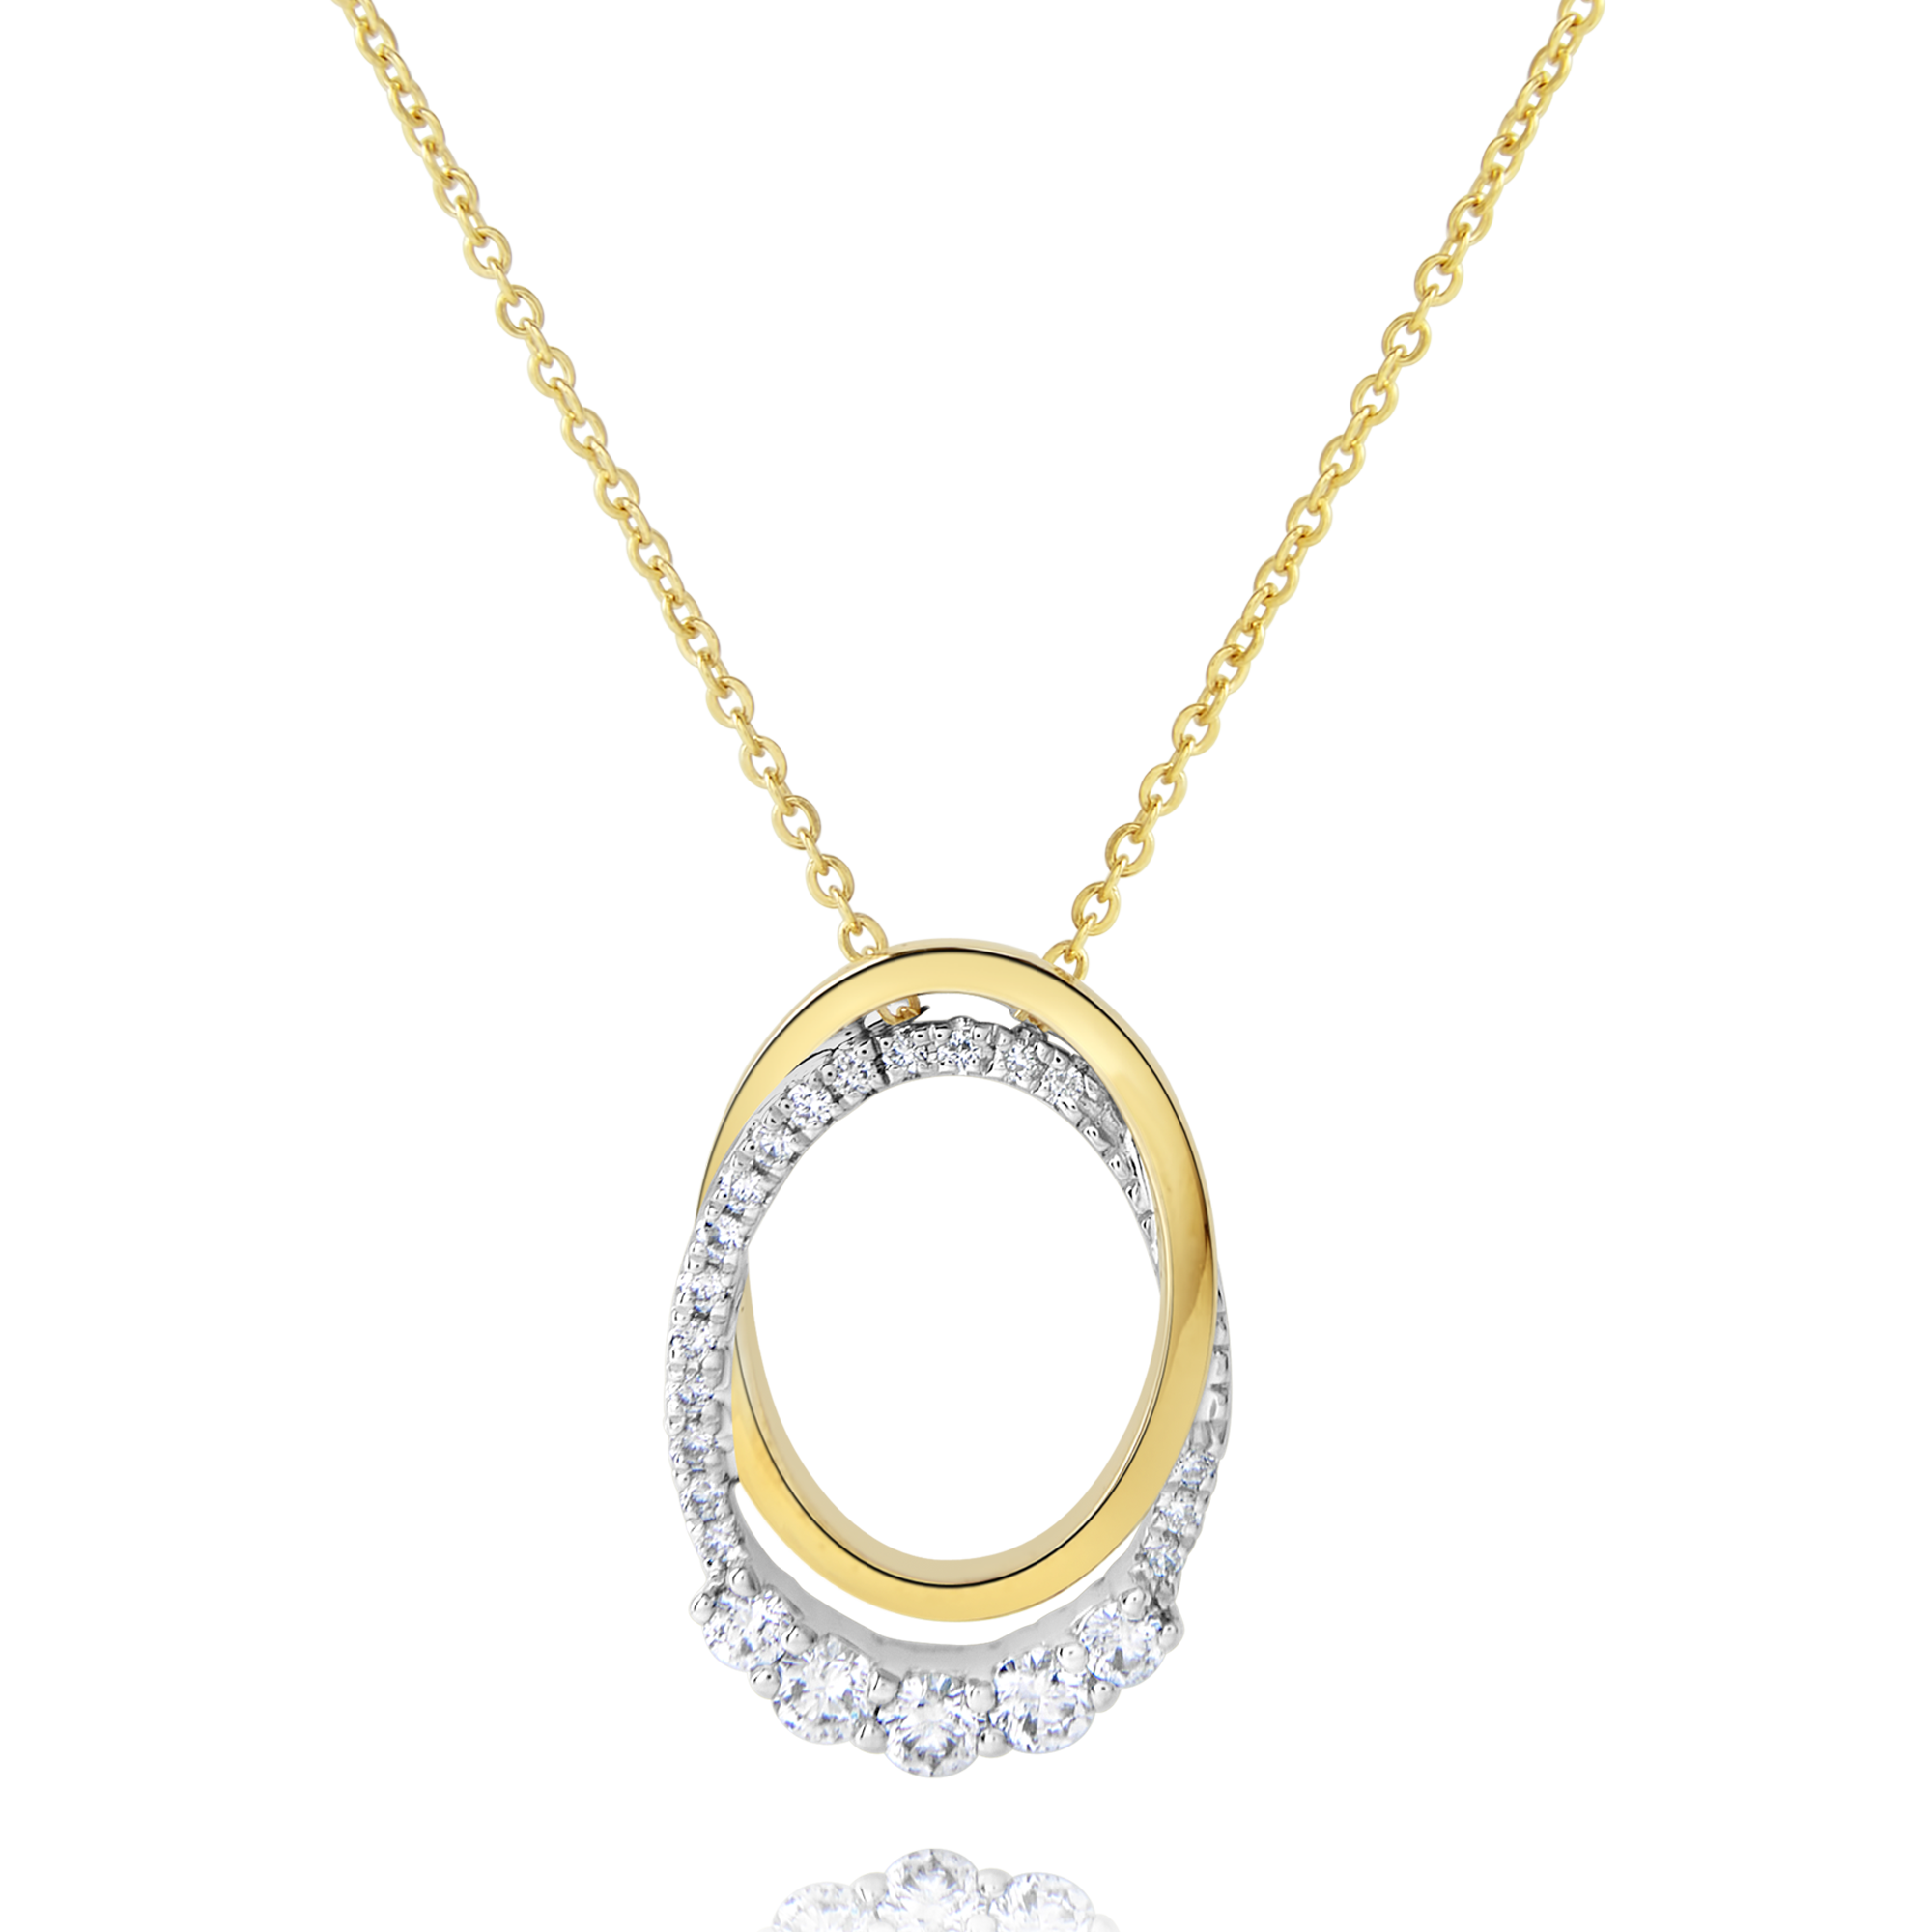 9ct Yellow Gold and Diamond Pendant